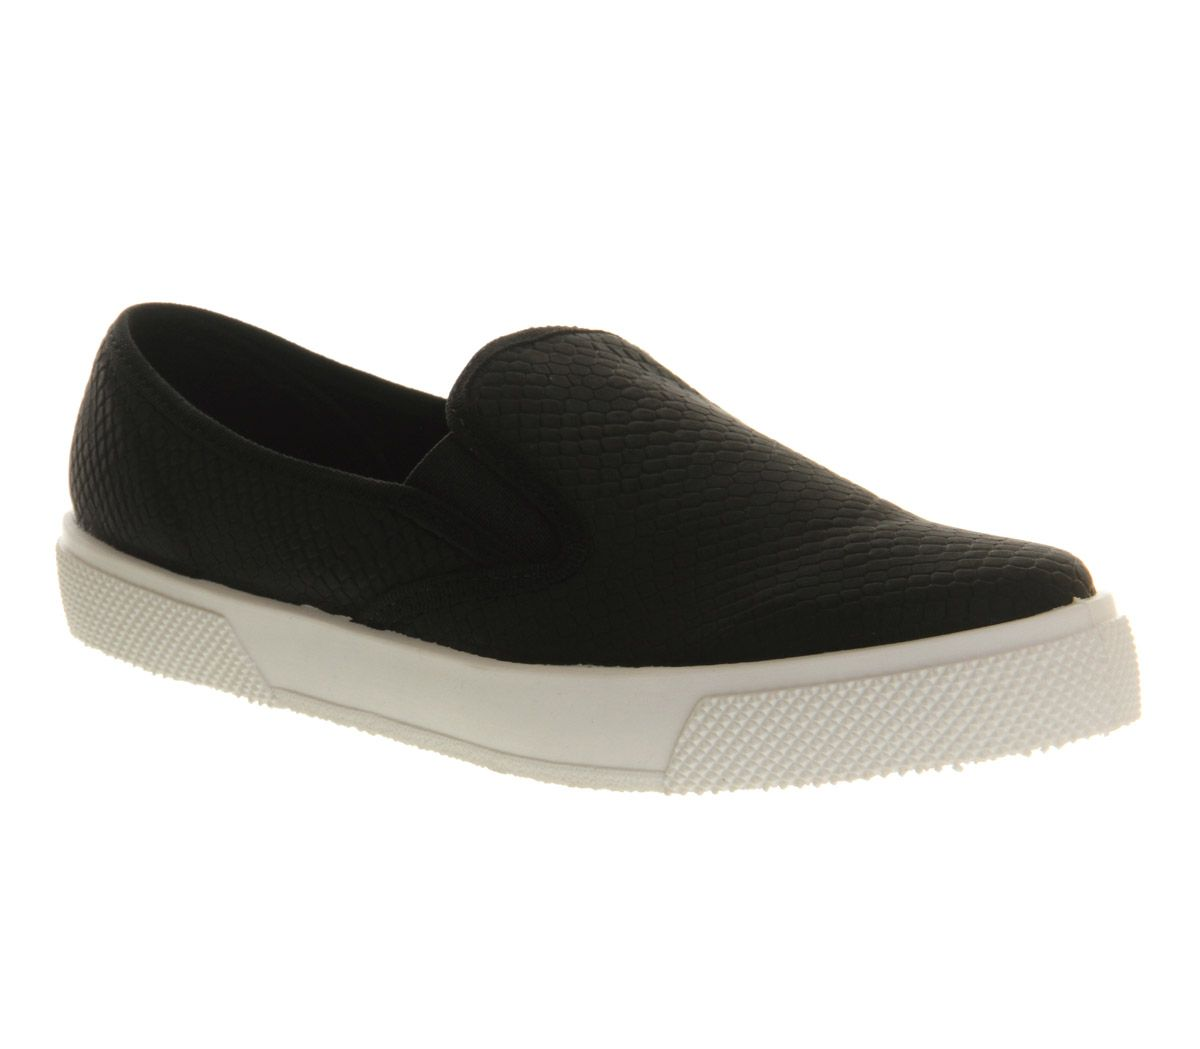 Kicker round toe flat slip on trainers